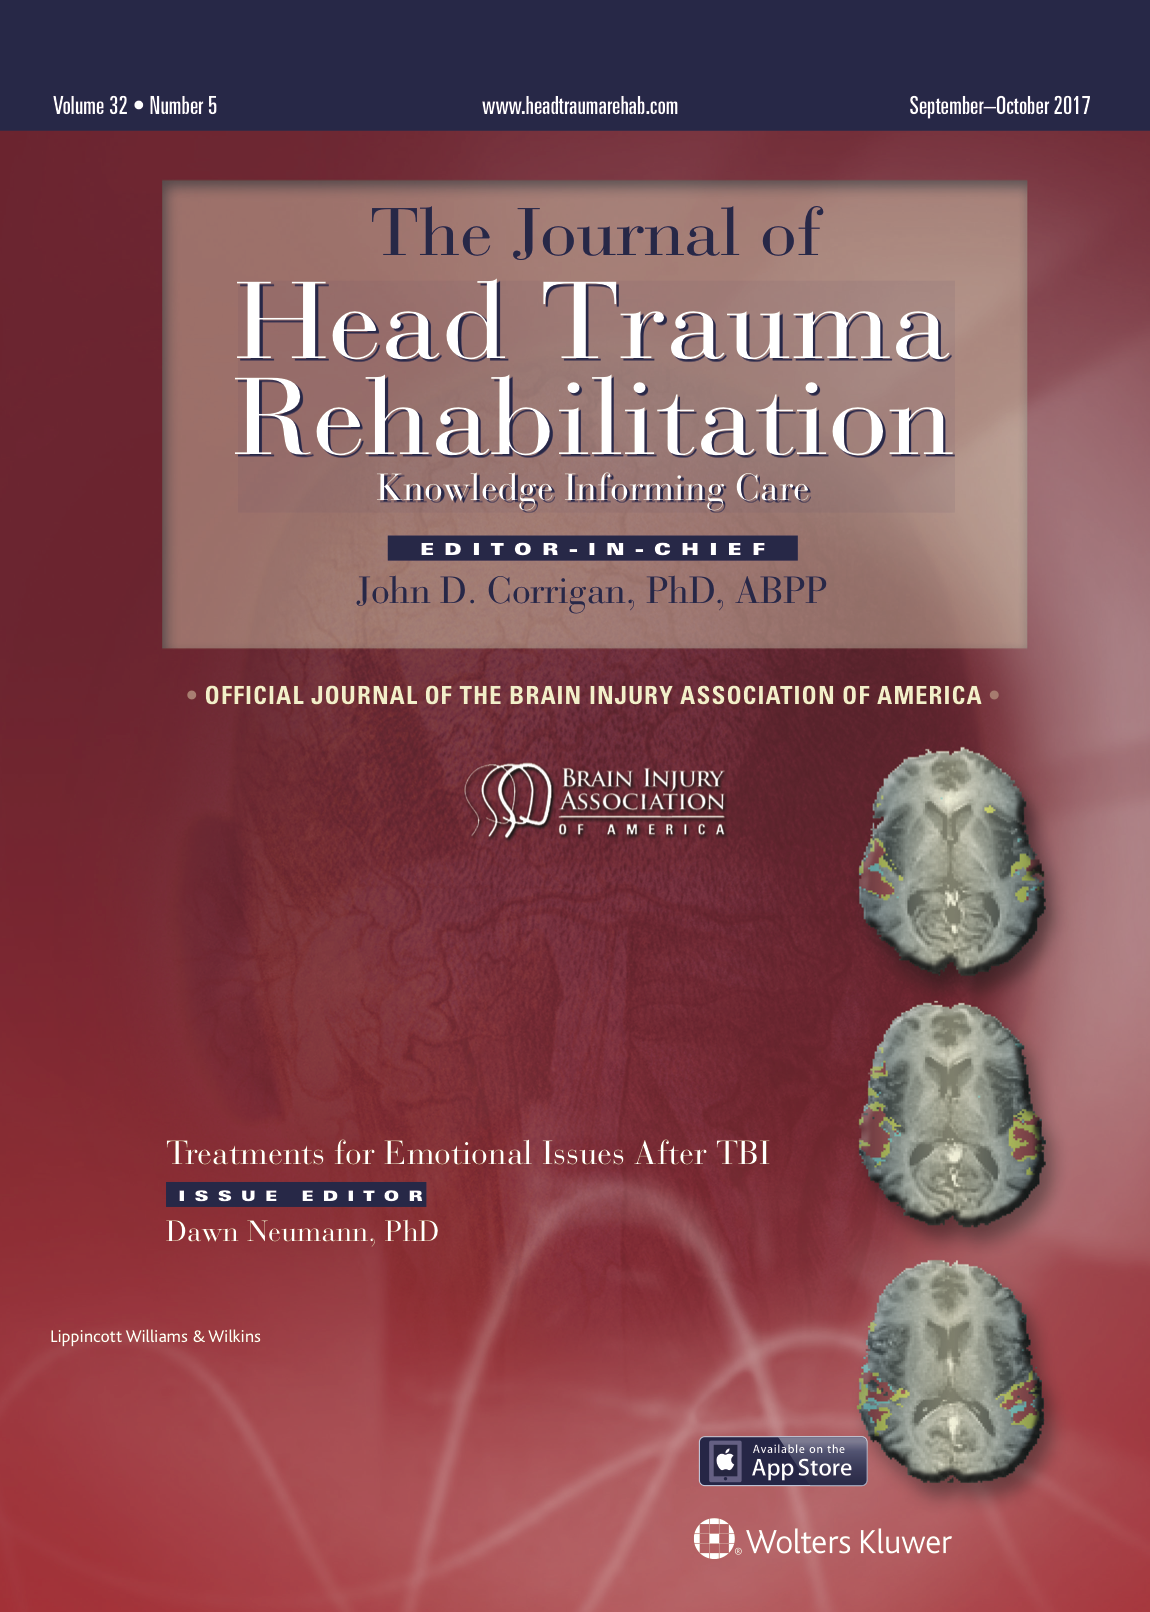 Head Trauma Rehabilitation Journal Cover